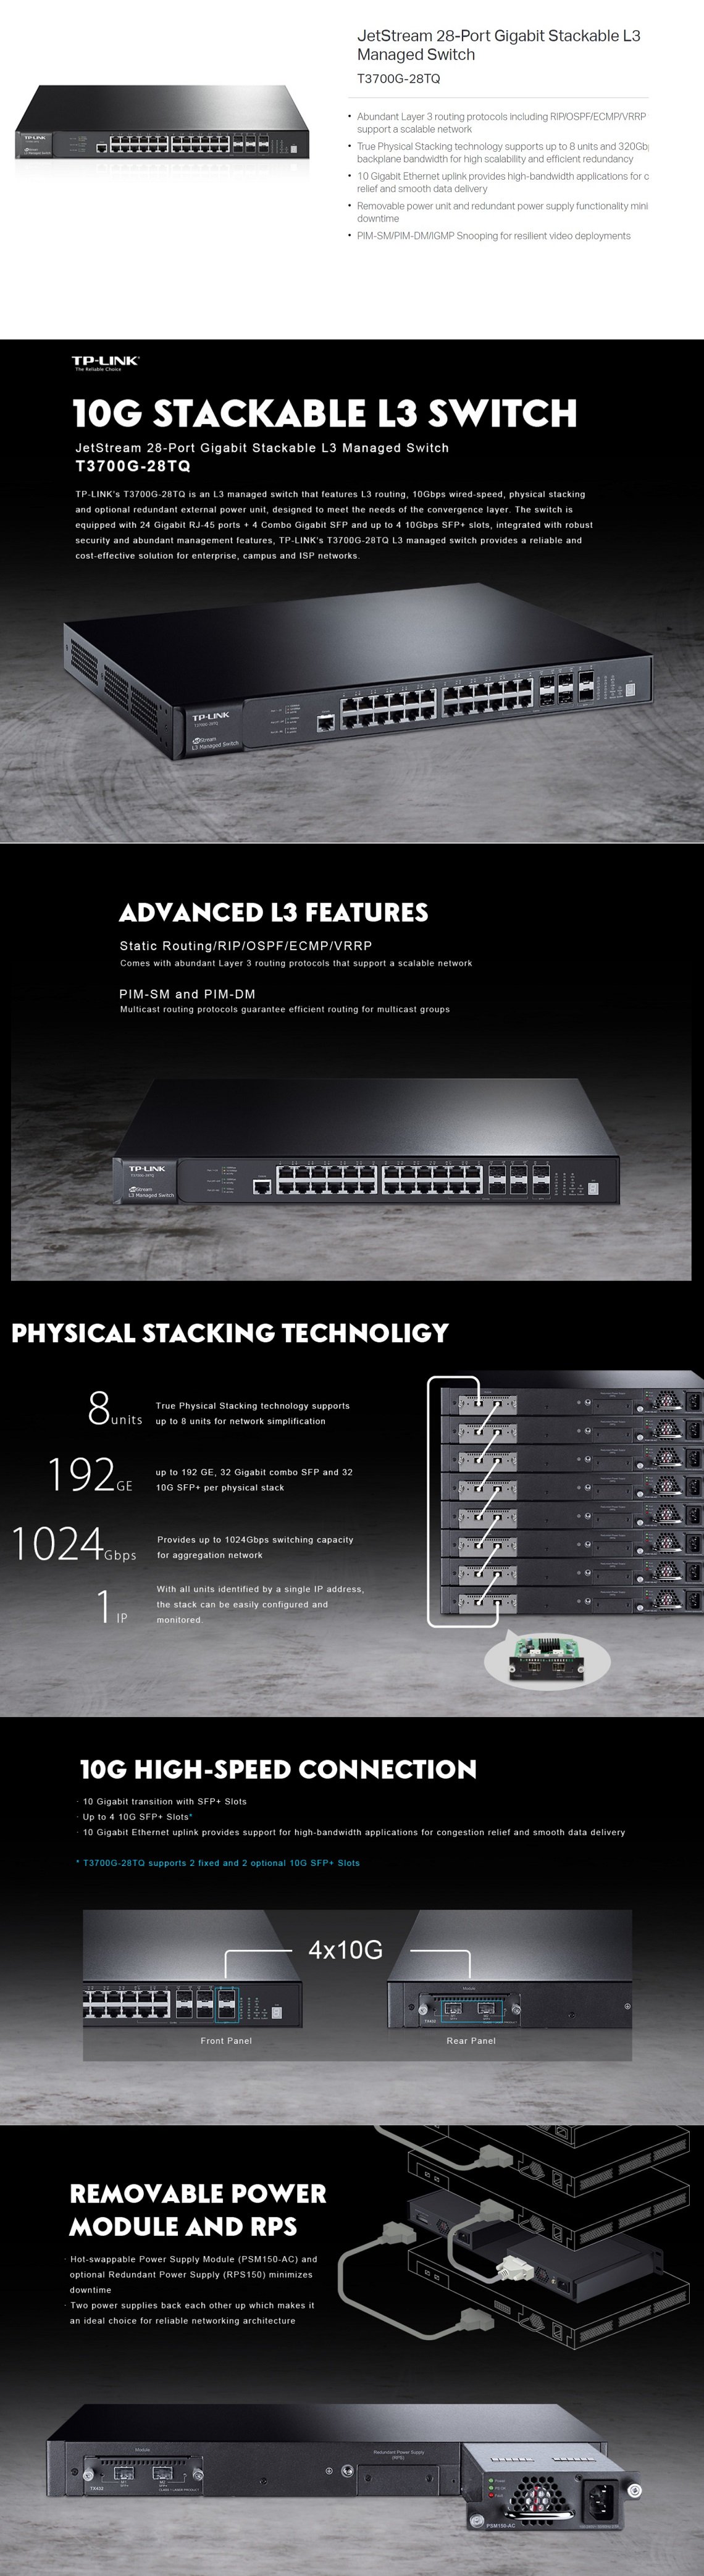 TP-Link T3700G-28TQ JetStream 28-Port Gigabit Stackable L3 Managed Switch 10GbE